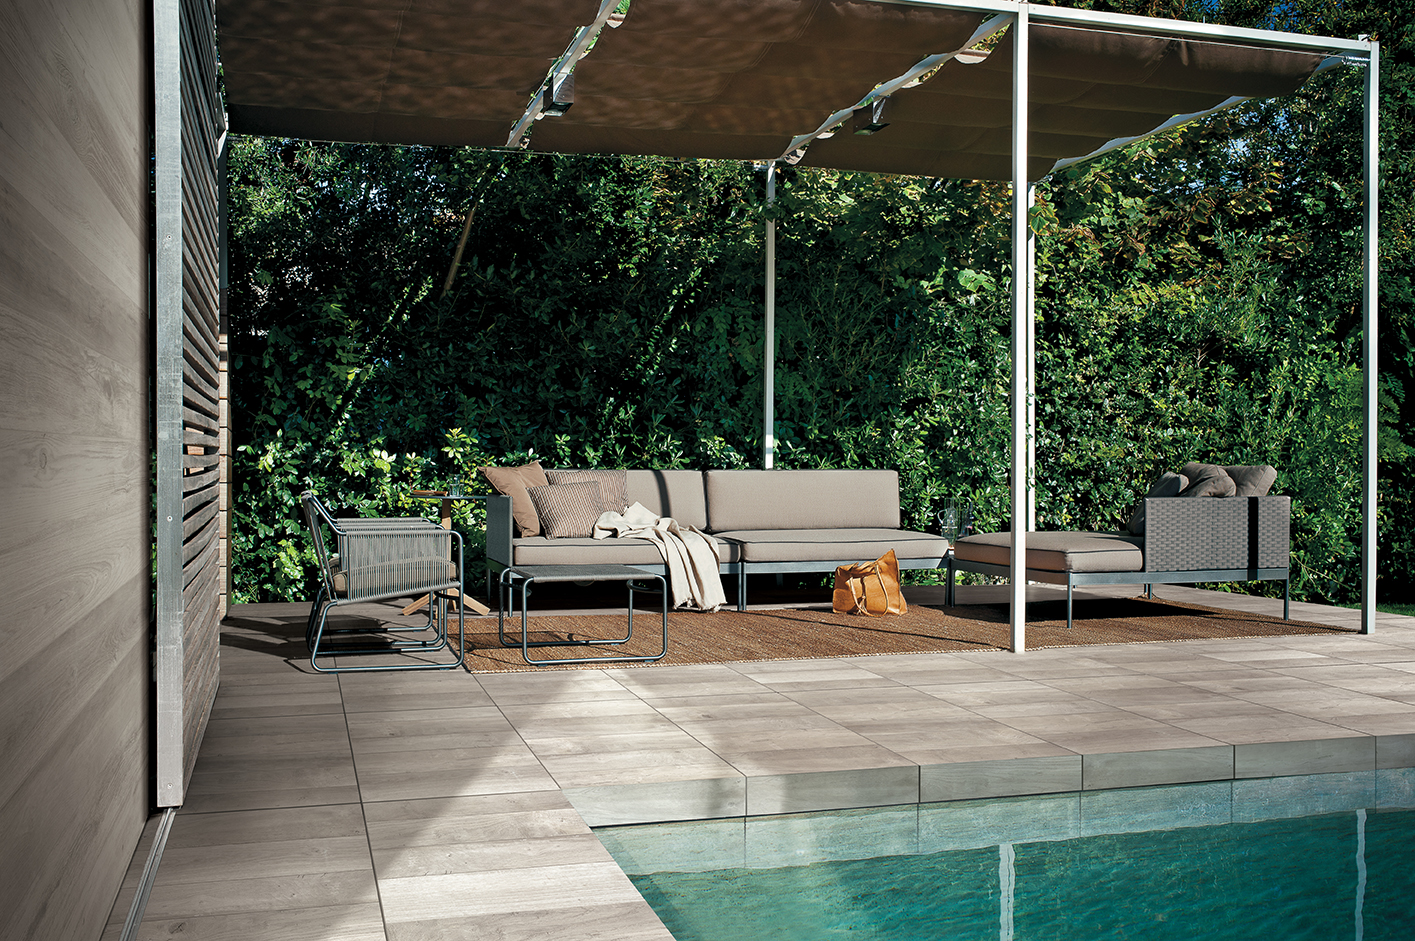 Why Porcelain Pavers Are Perfect for Your Project